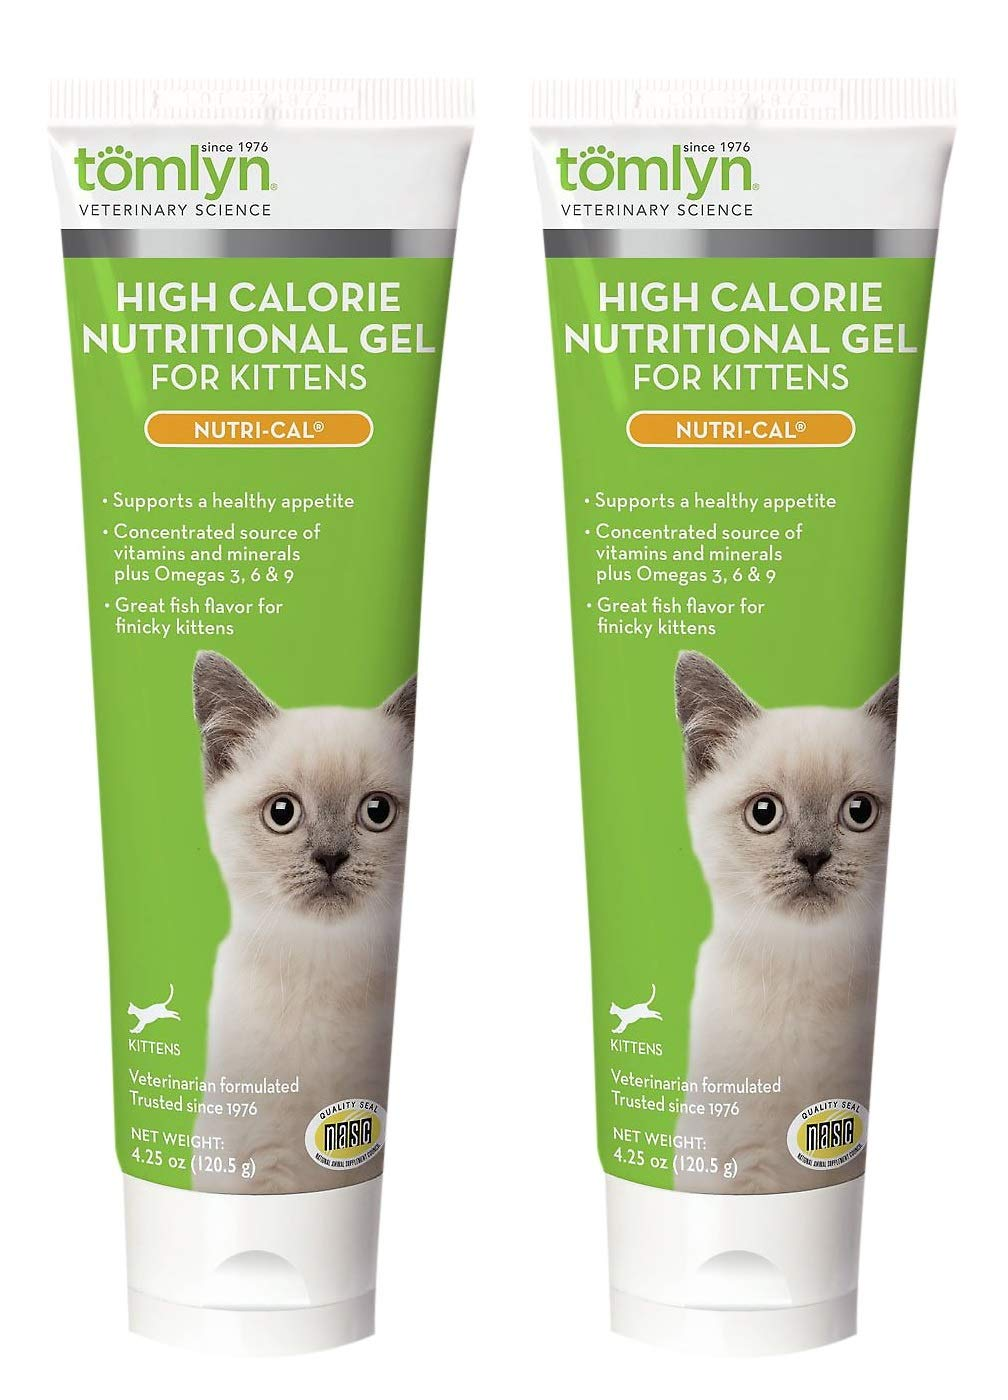 Tomlyn 2 Pack of High Calorie Nutritional Gel for Kittens, 4.25 Ounces each by Tom Lyn